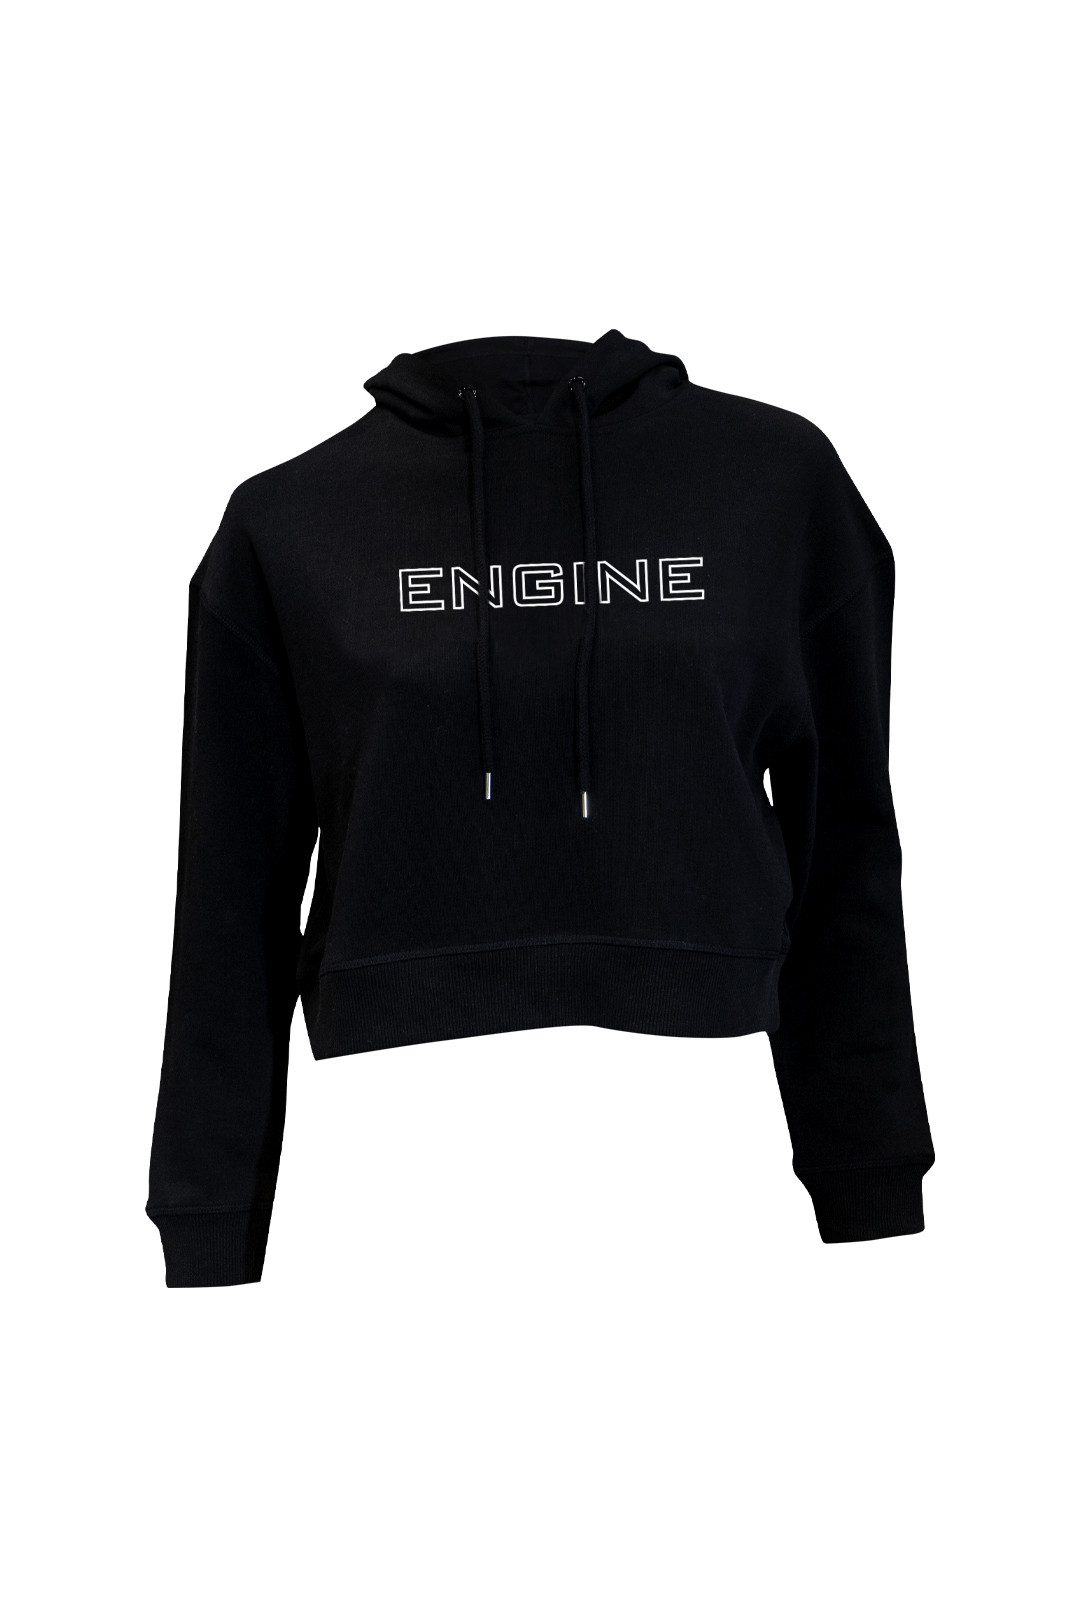 Crop Hoodie - Outline Black